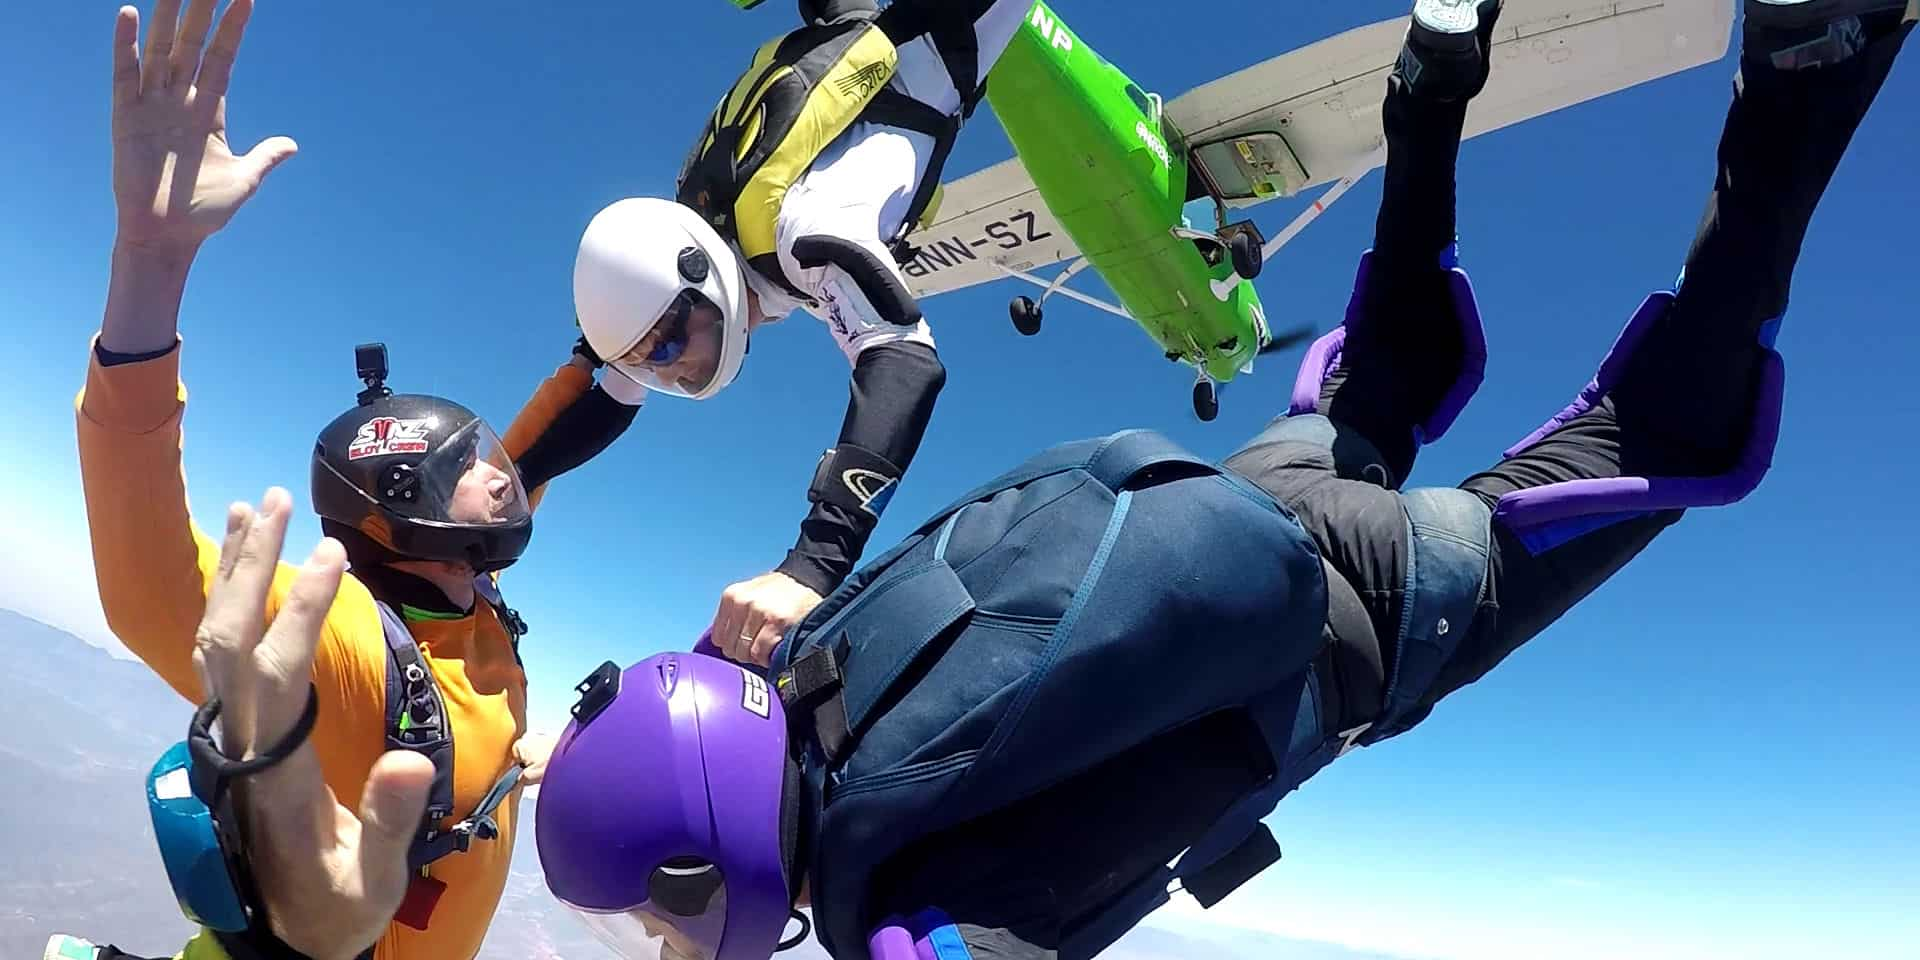 Robertson Challenge Yourself to Skydive